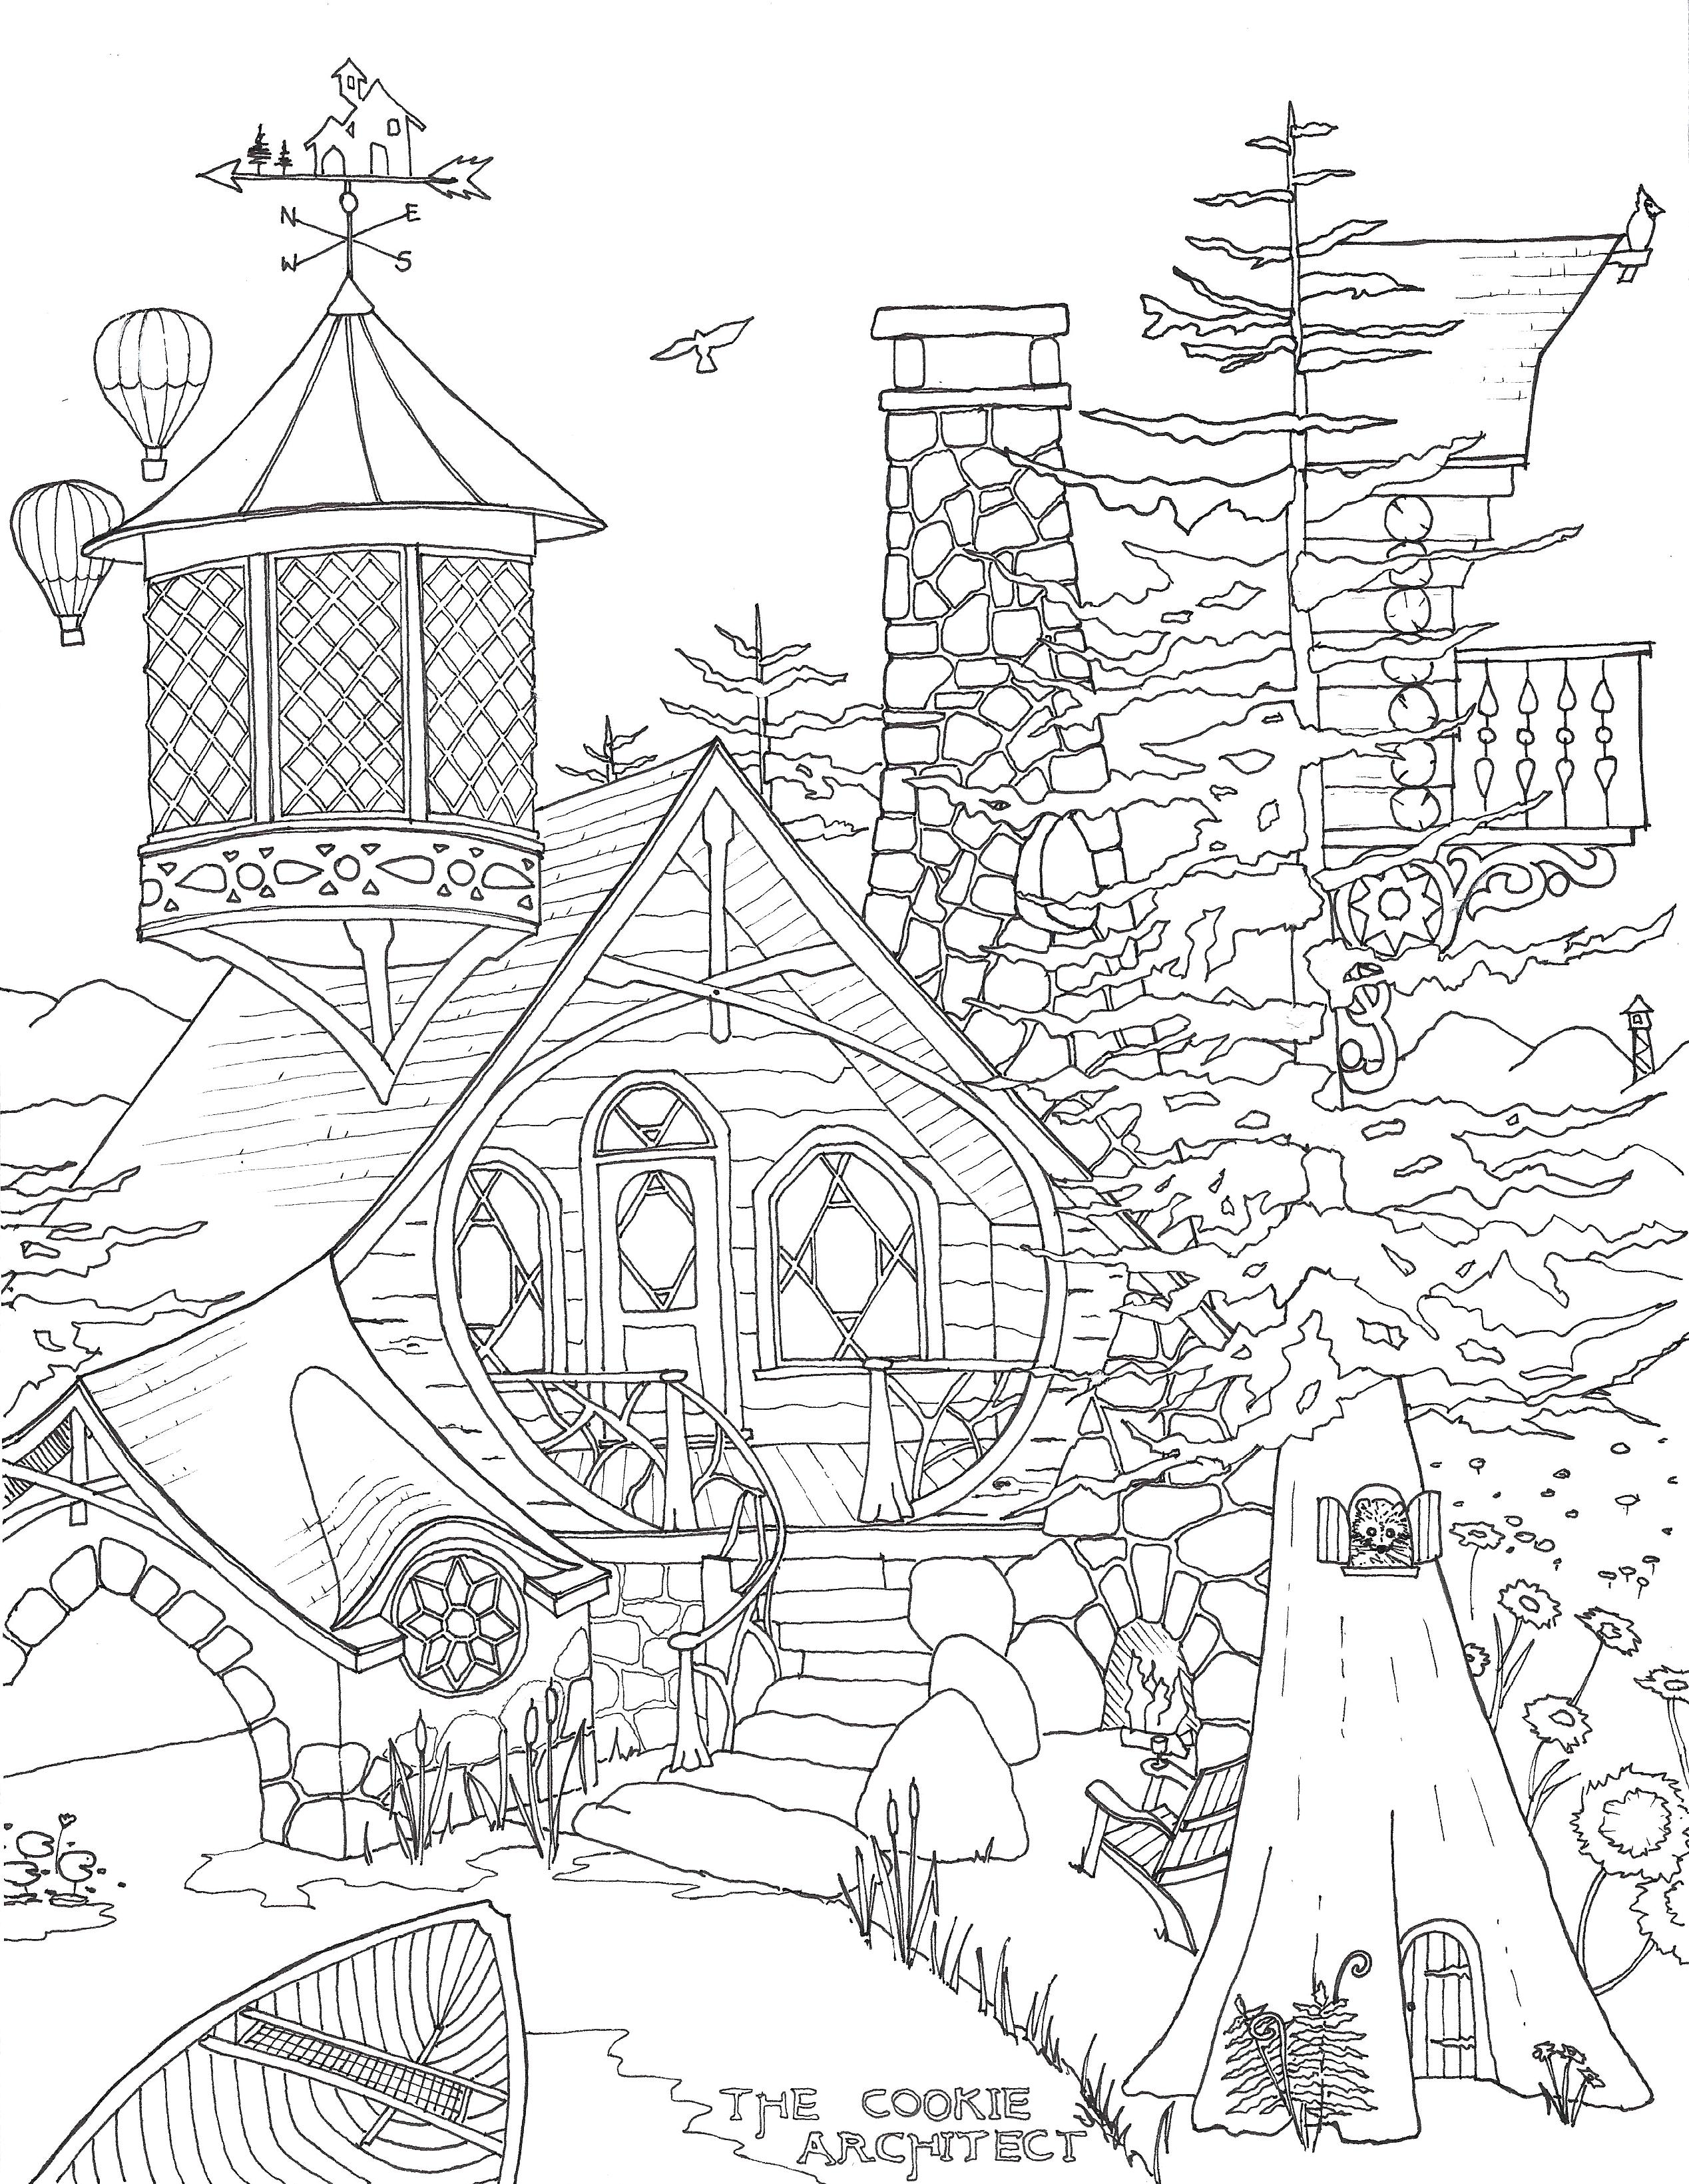 Llama Christmas Coloring Pages With Llove Me Some Llamas The Cookie Architect